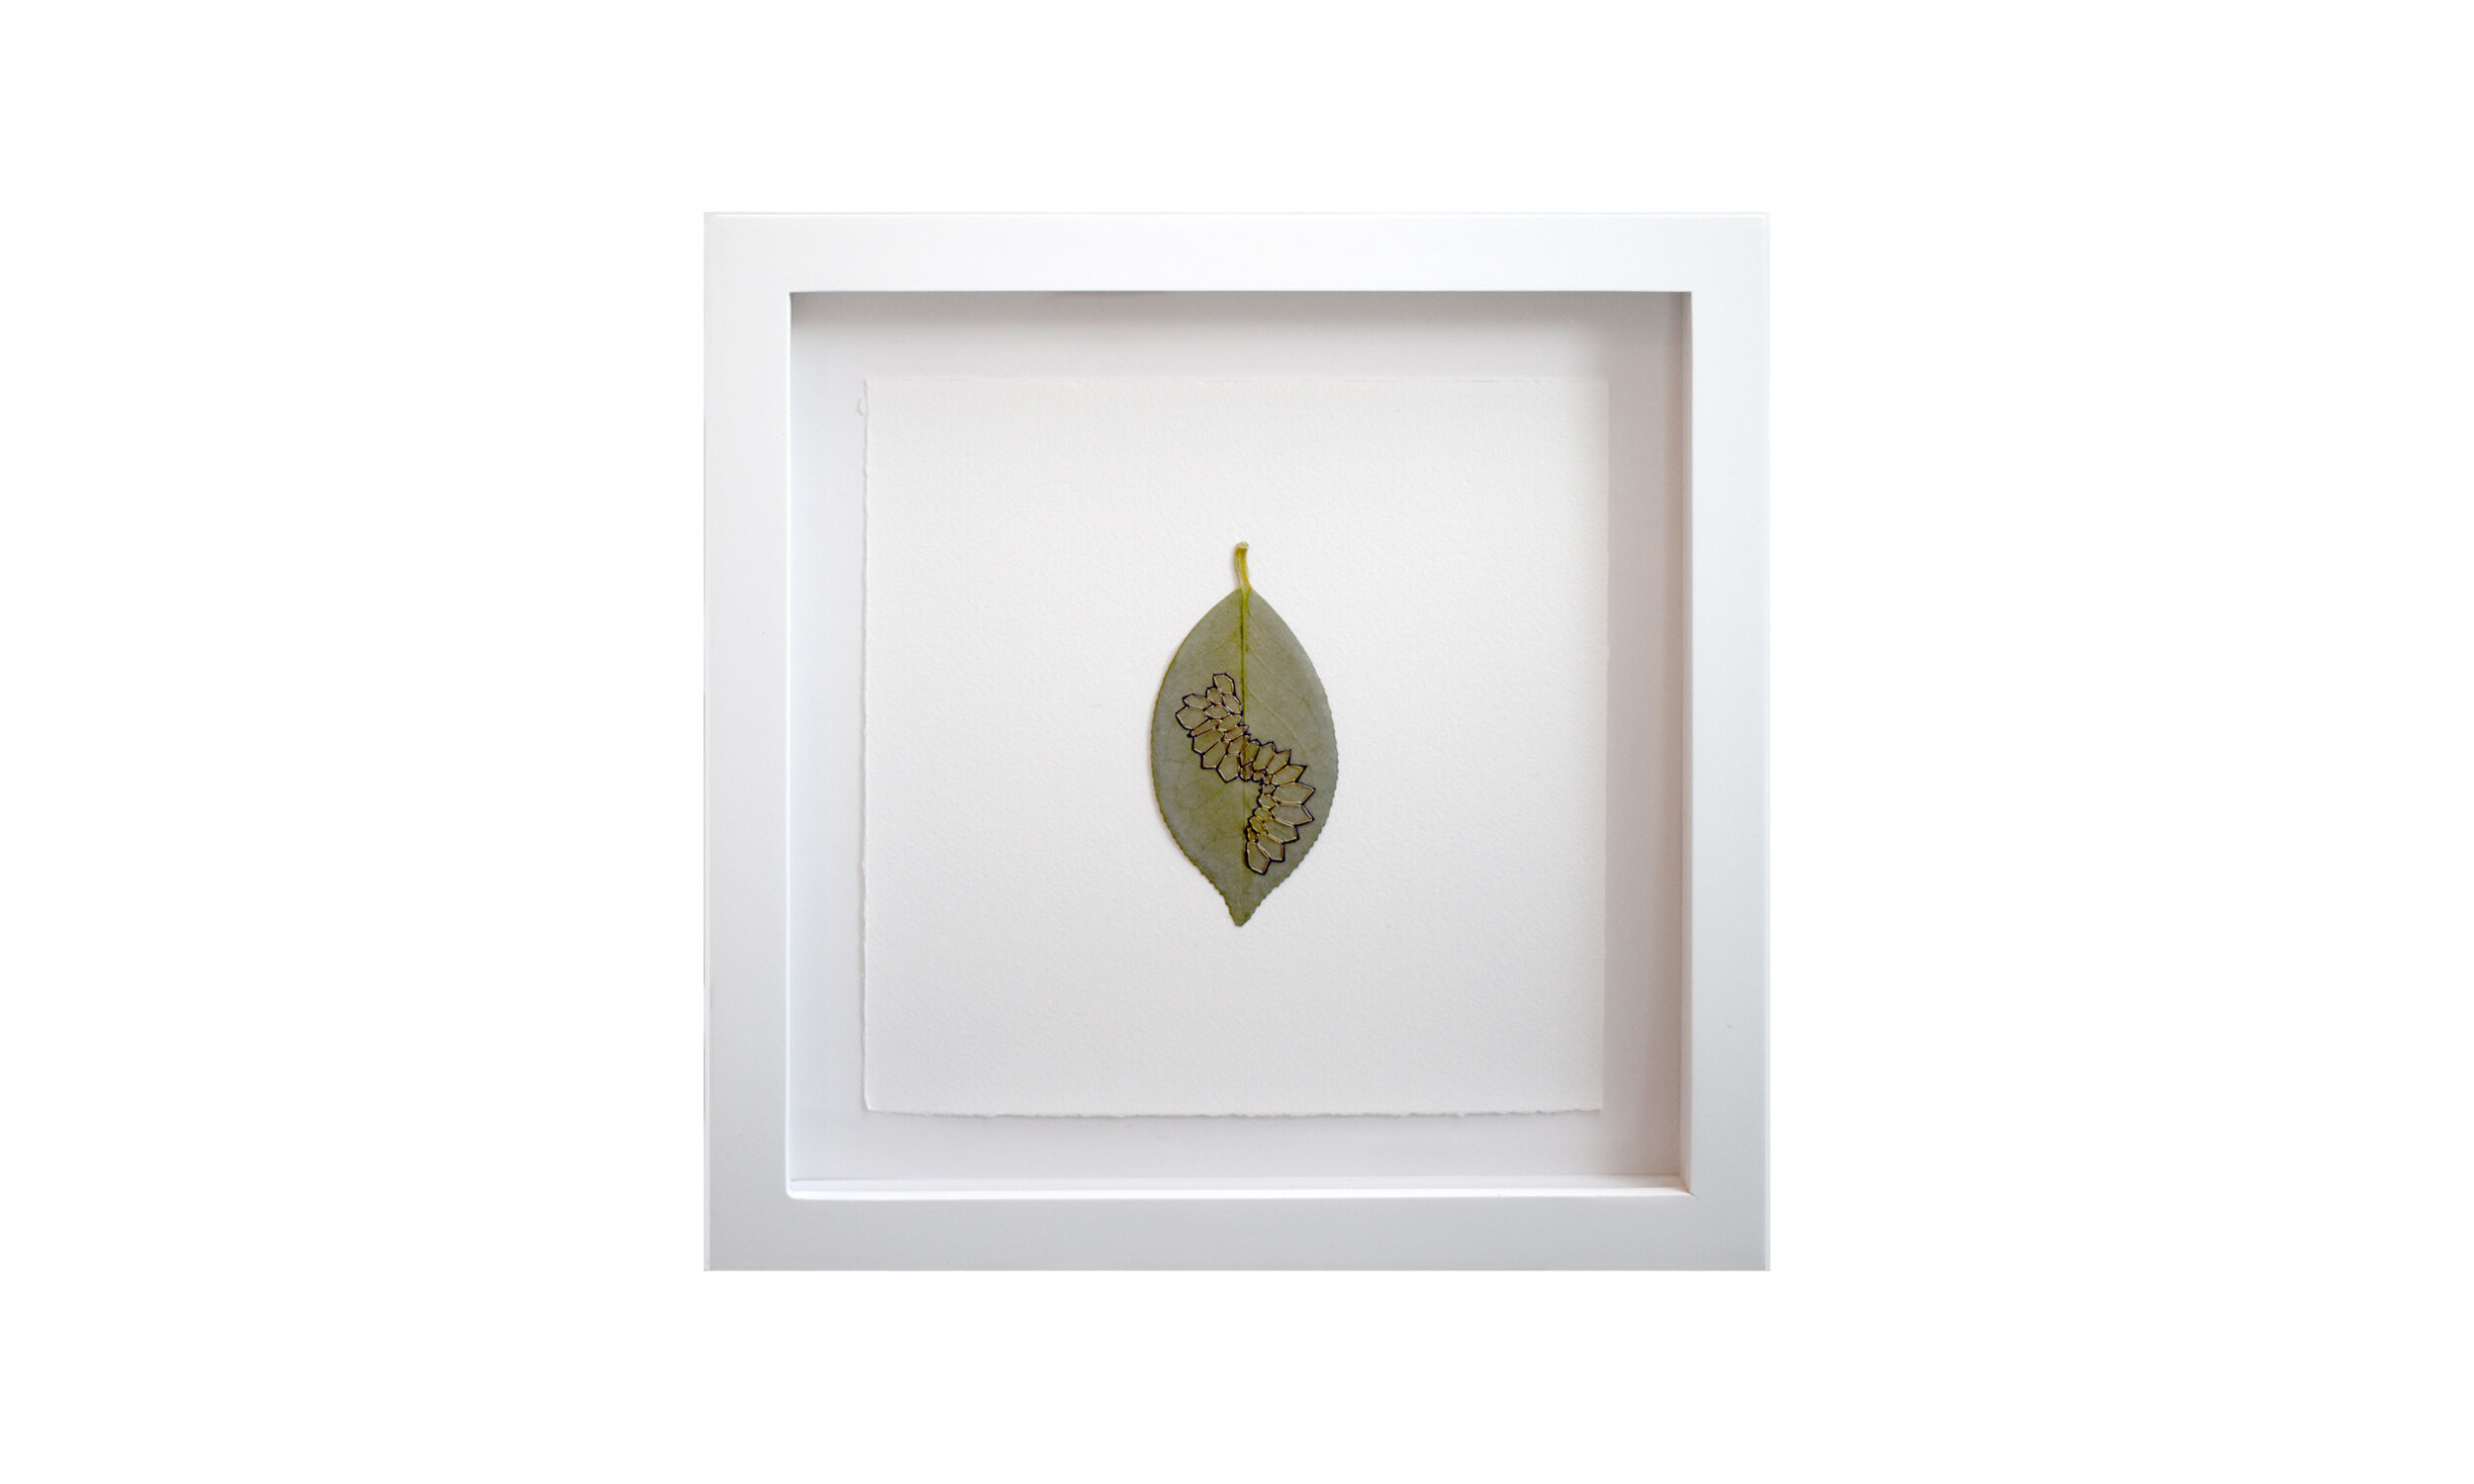 """Honeycombs , hand stitched camellia leaves, 11.25"""" x 11.25"""" each, framed, $ 1,800 (set of three)    Contact us for purchase"""